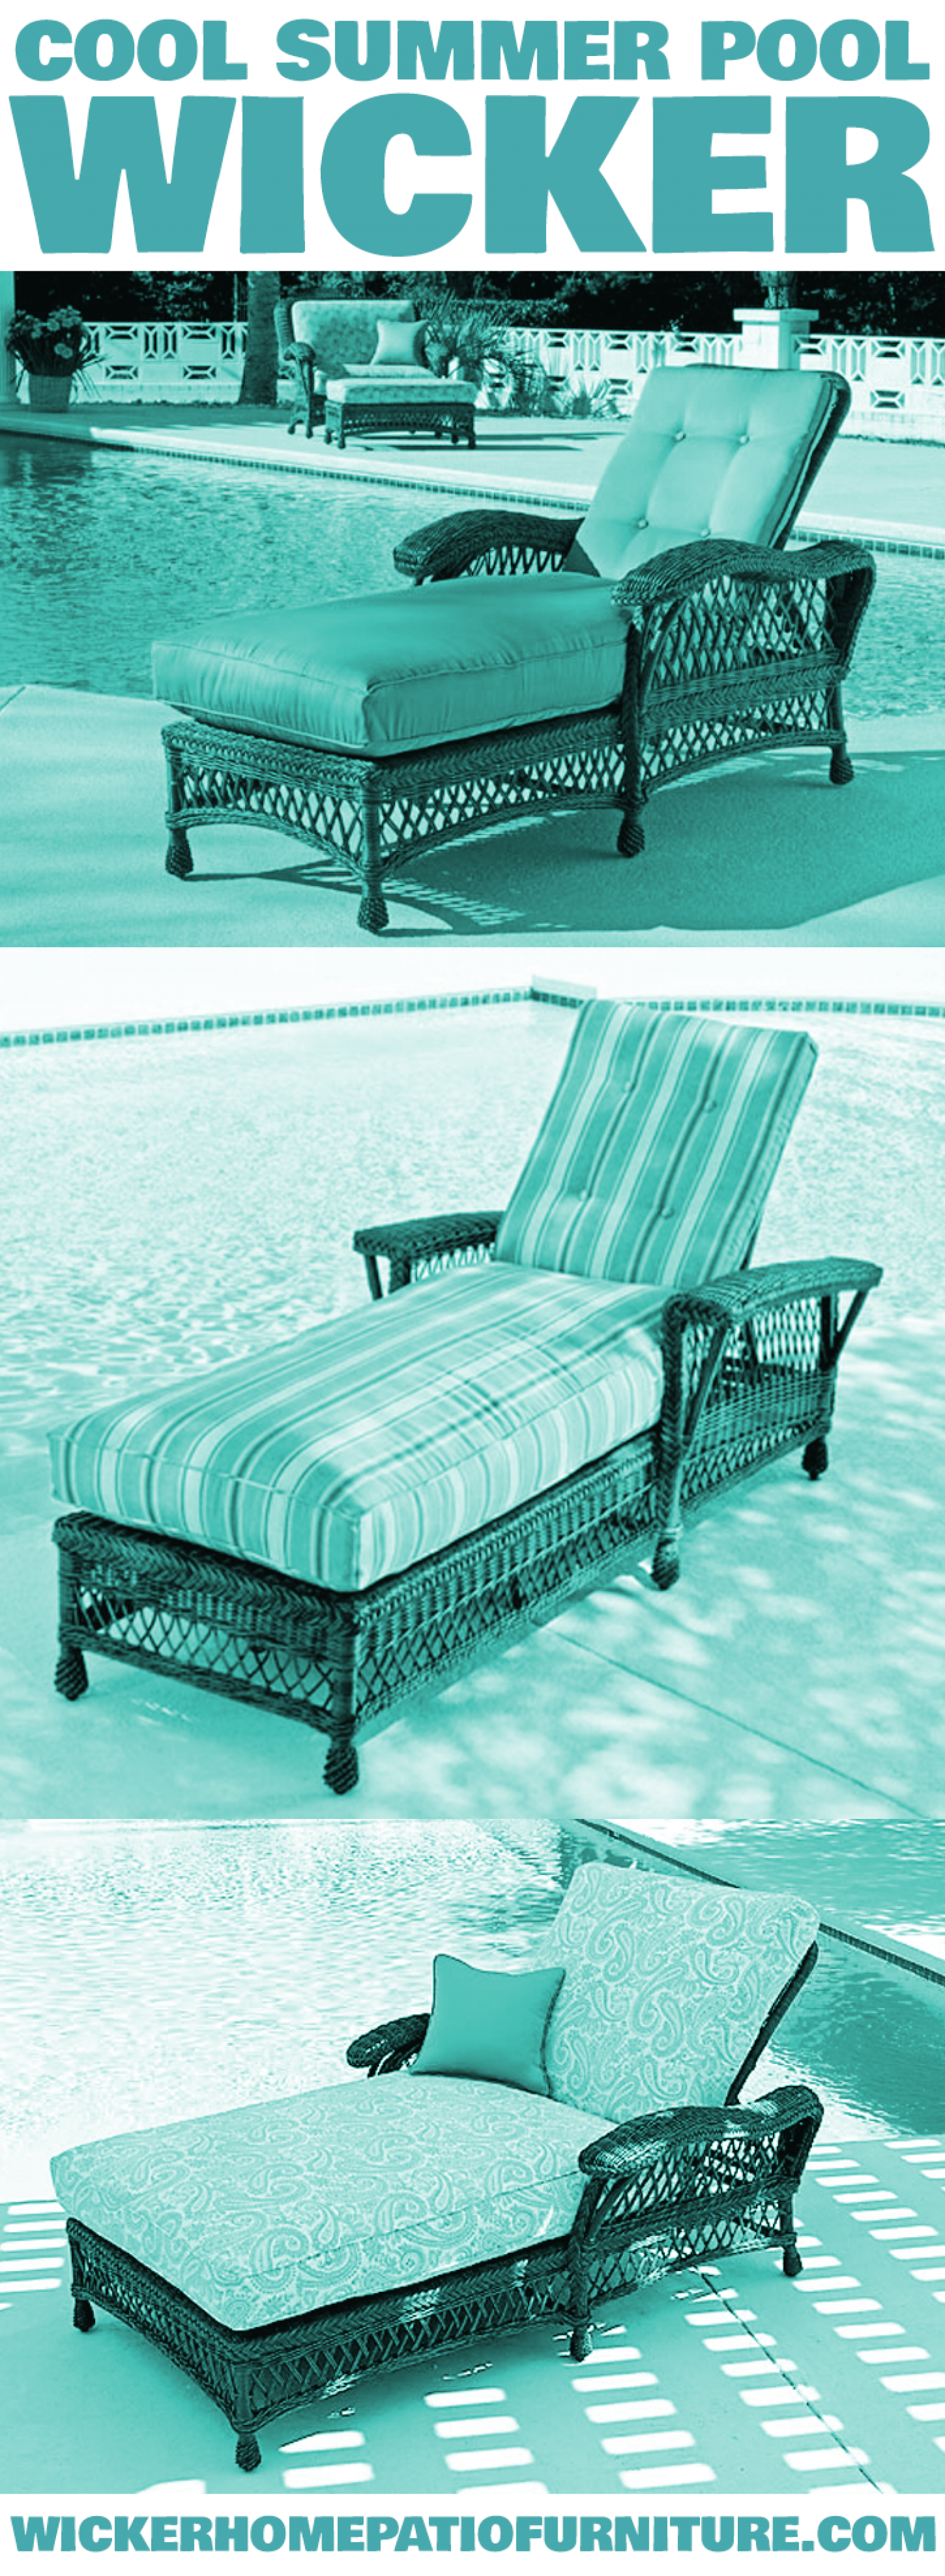 Summer Wicker Furniture Infographic